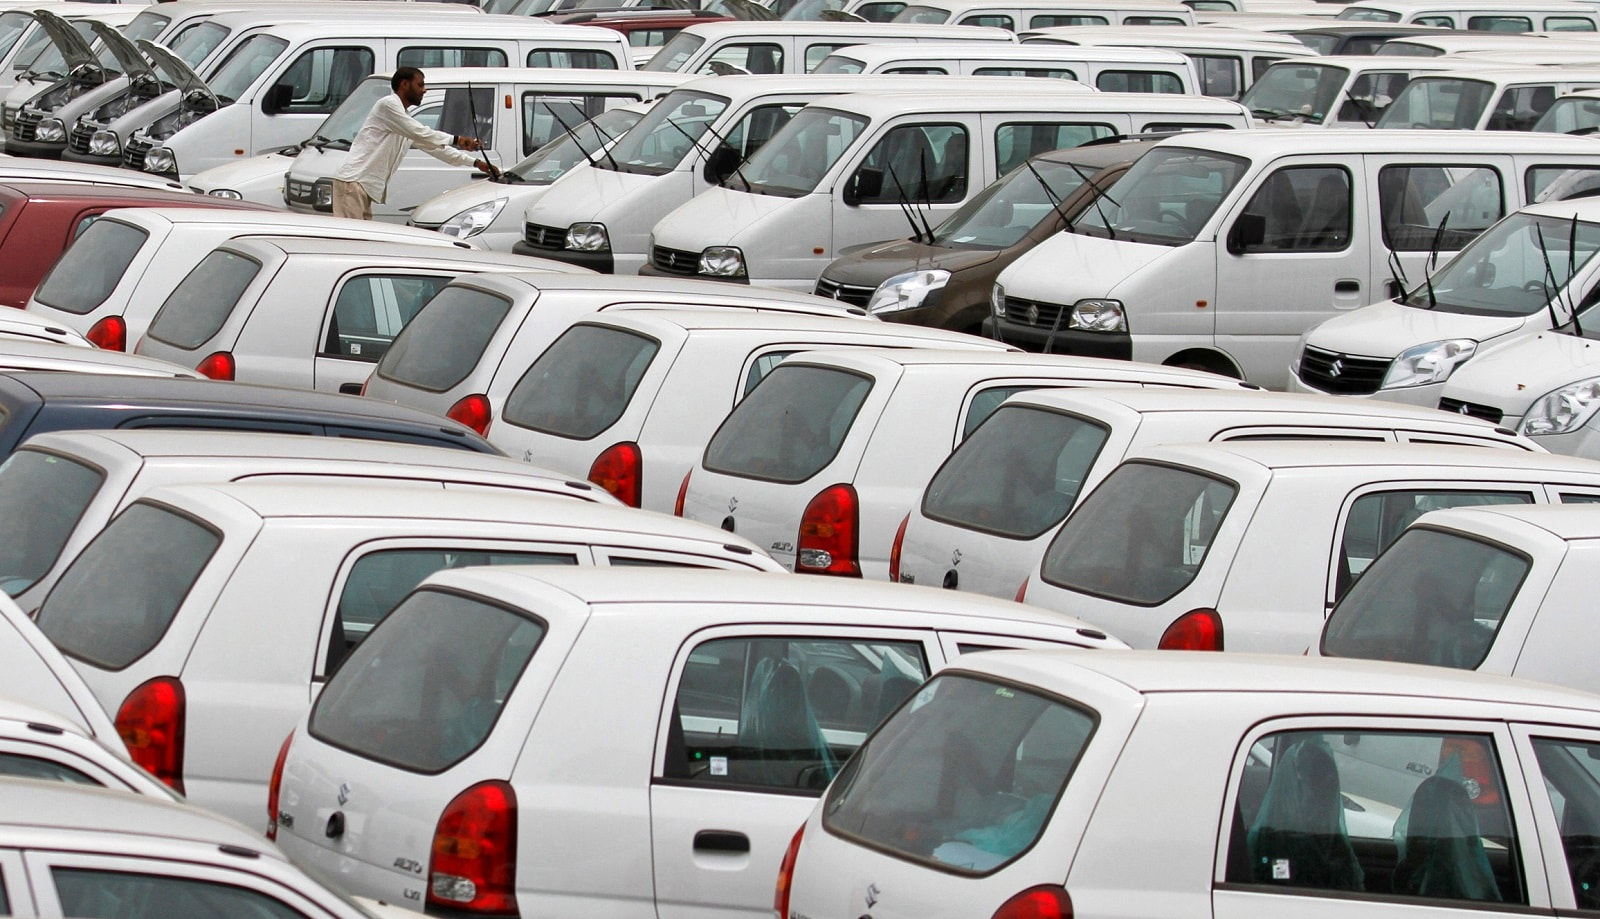 Maruti Suzuki: Suzuki Motor India Pvt Ltd has decided to hold back its planned investments on capacity enhancement due to the ongoing slowdown in two-wheeler sales and expectation of a hit in the market by the transition to stricter BS-VI emission norm from BS-IV in April 2020, a senior company official told PTI. (Photo: REUTERS/Amit Dave/Files)